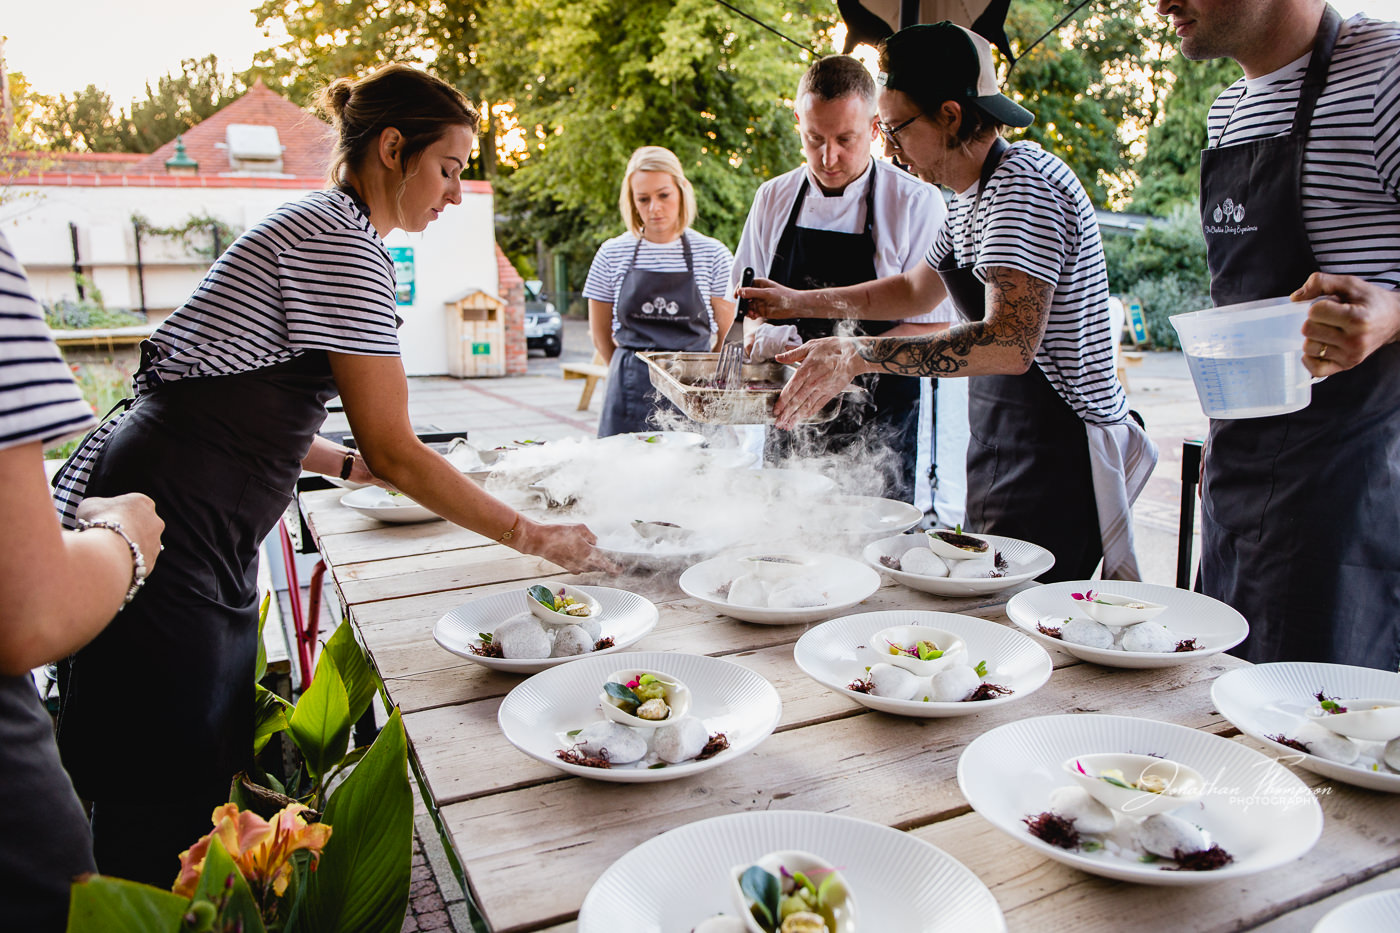 Chefs plating up rows of white plates in an outdoor setting while wait staff pick up finished dishes to serve. Chester Zoo